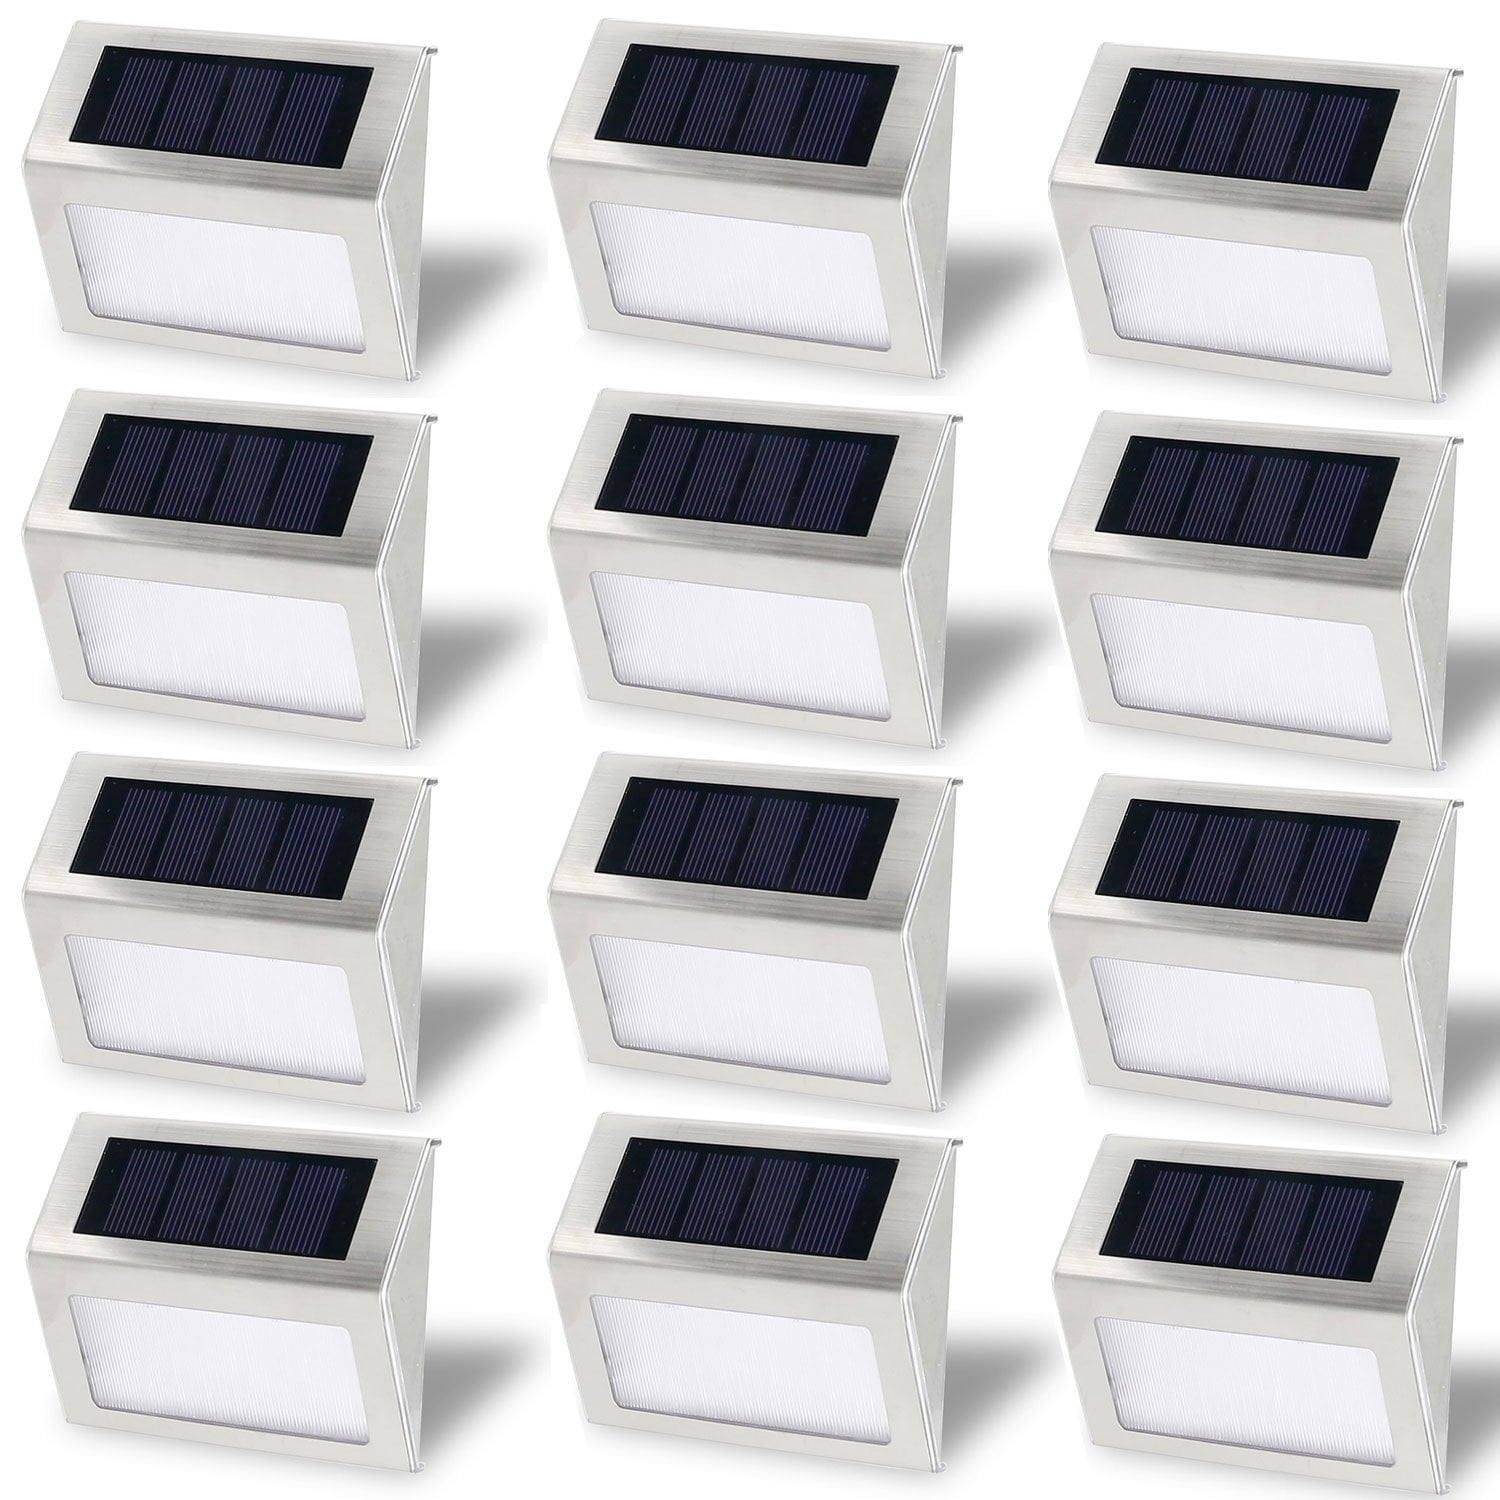 Solar Stair Light, EpicGadget Waterproof Outdoor LED Step Lighting 3 LED Solar Powered Step Lights Stainless... by